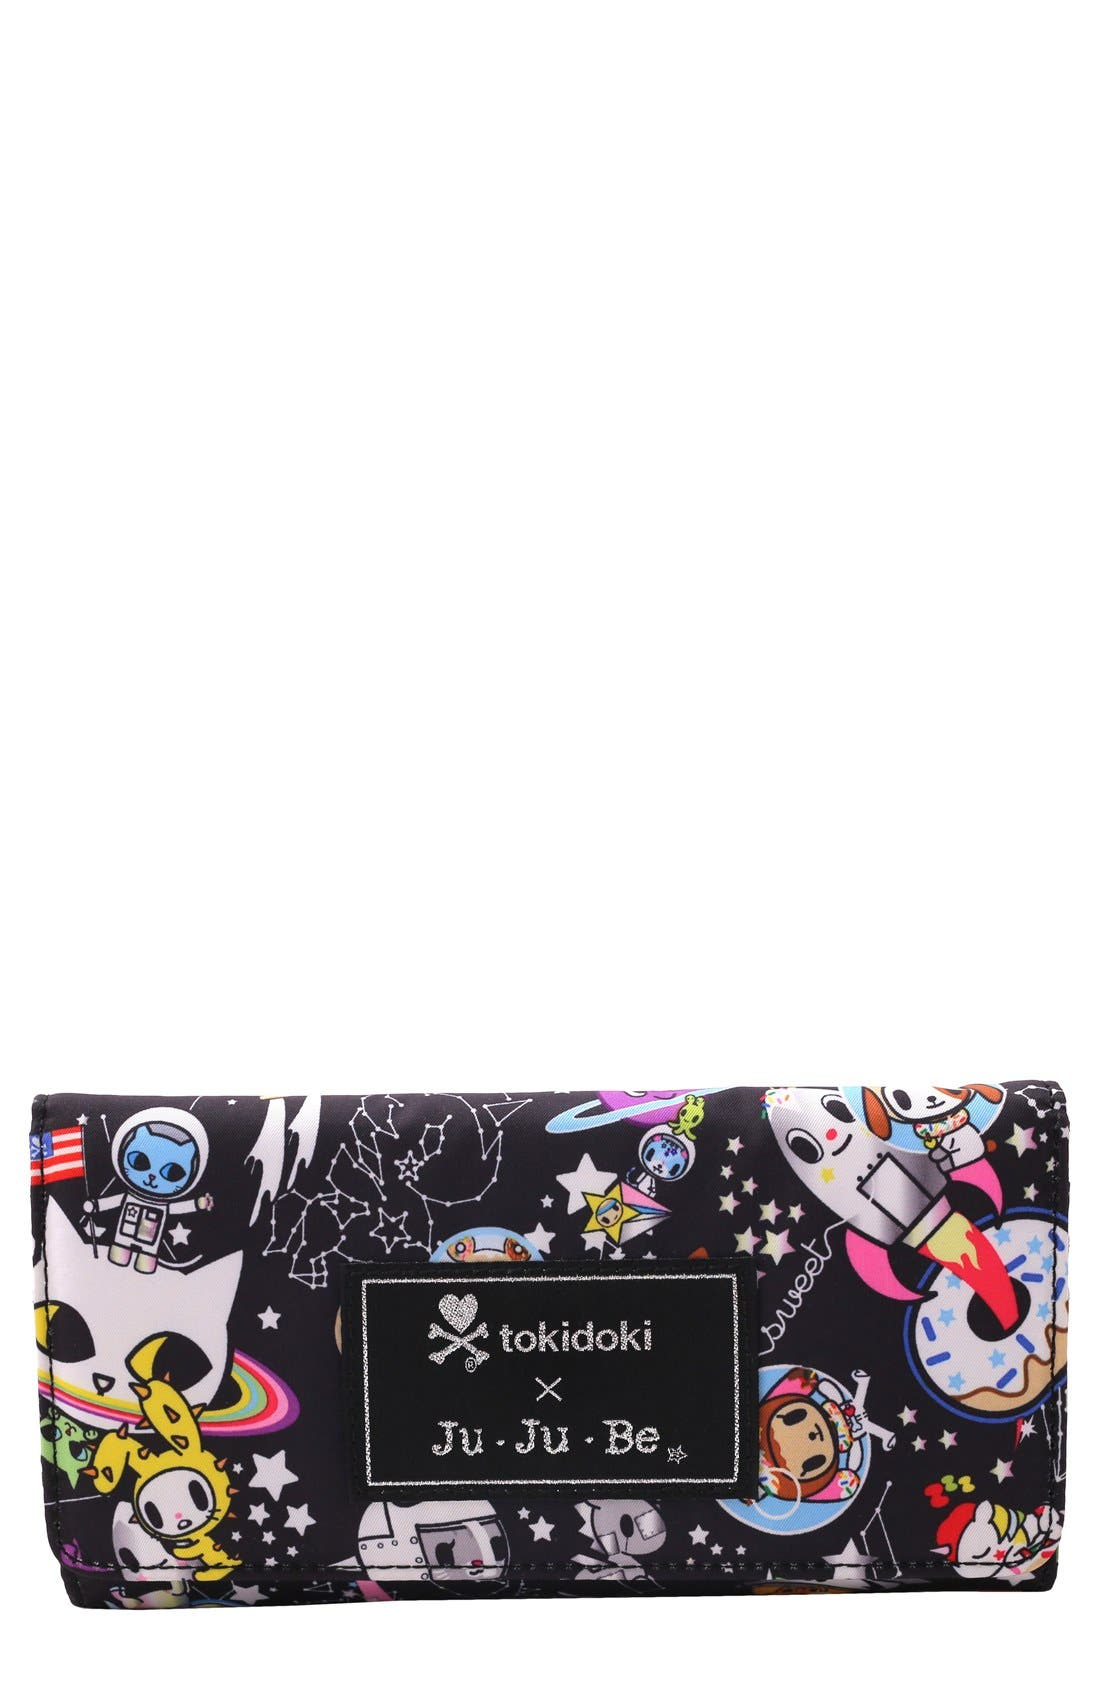 JU-JU-BE x tokidoki Be Rich Trifold Clutch Wallet